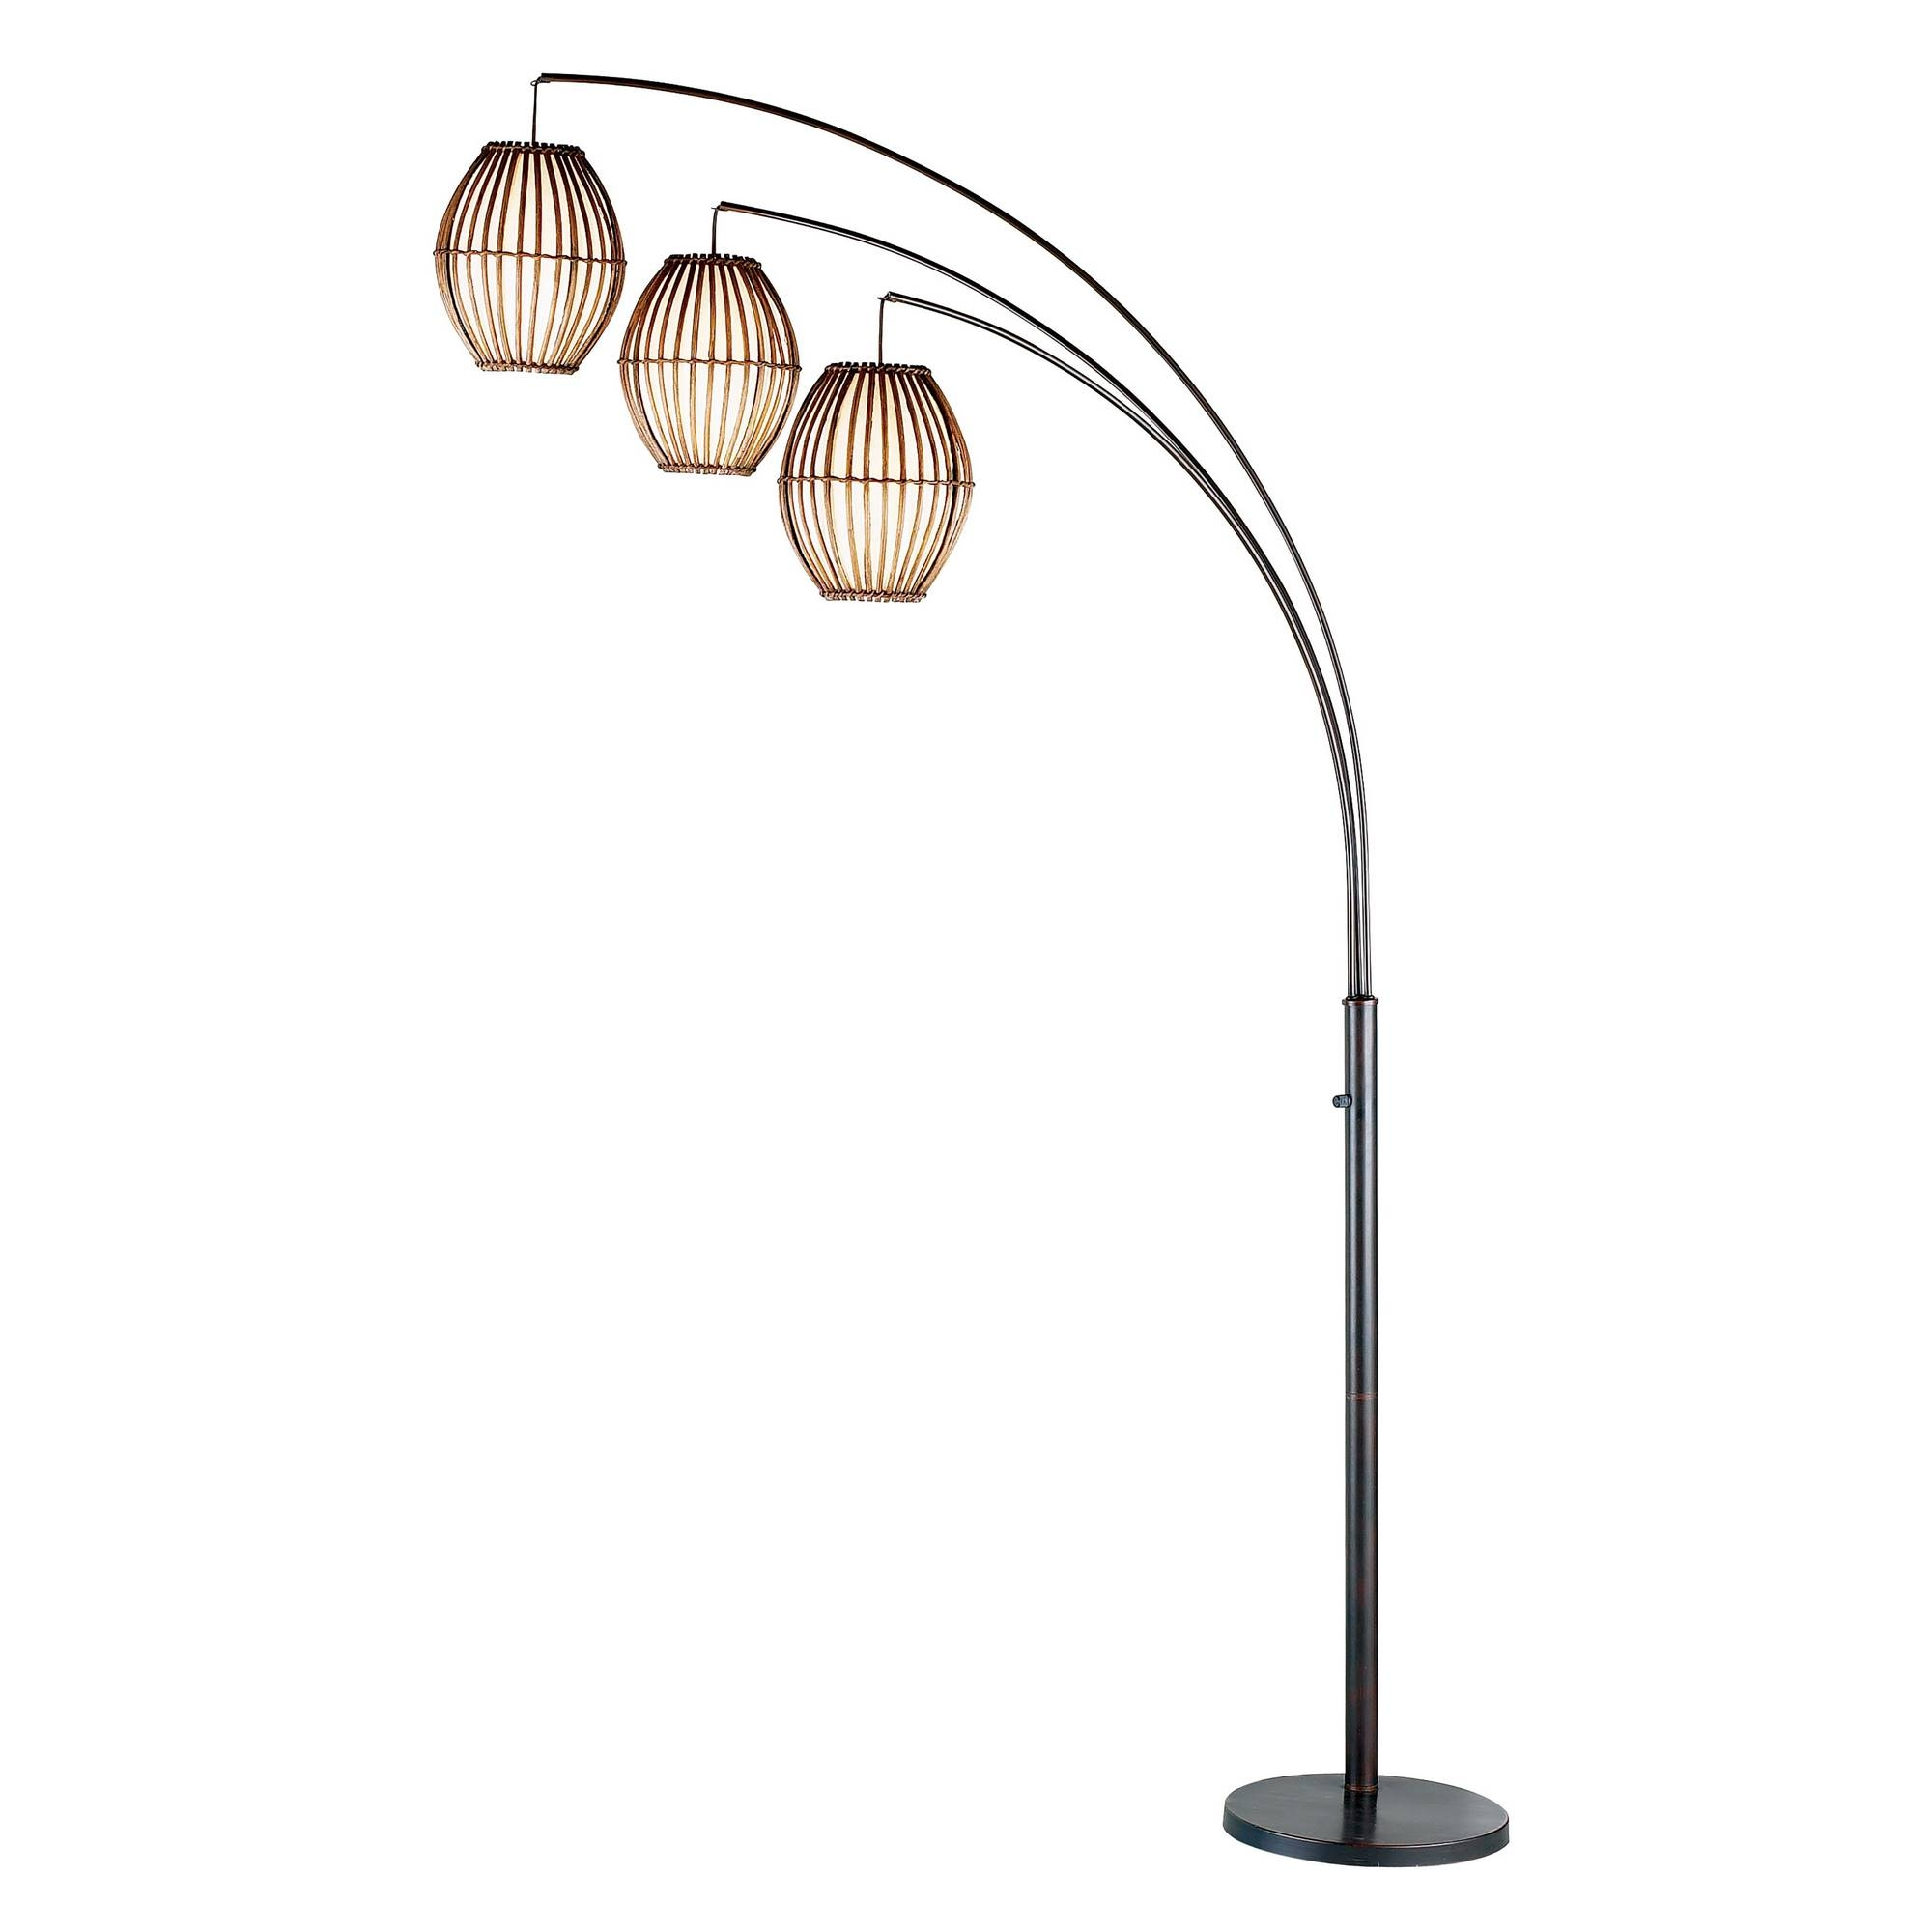 Adesso Maui Arched Floor Lamp 4